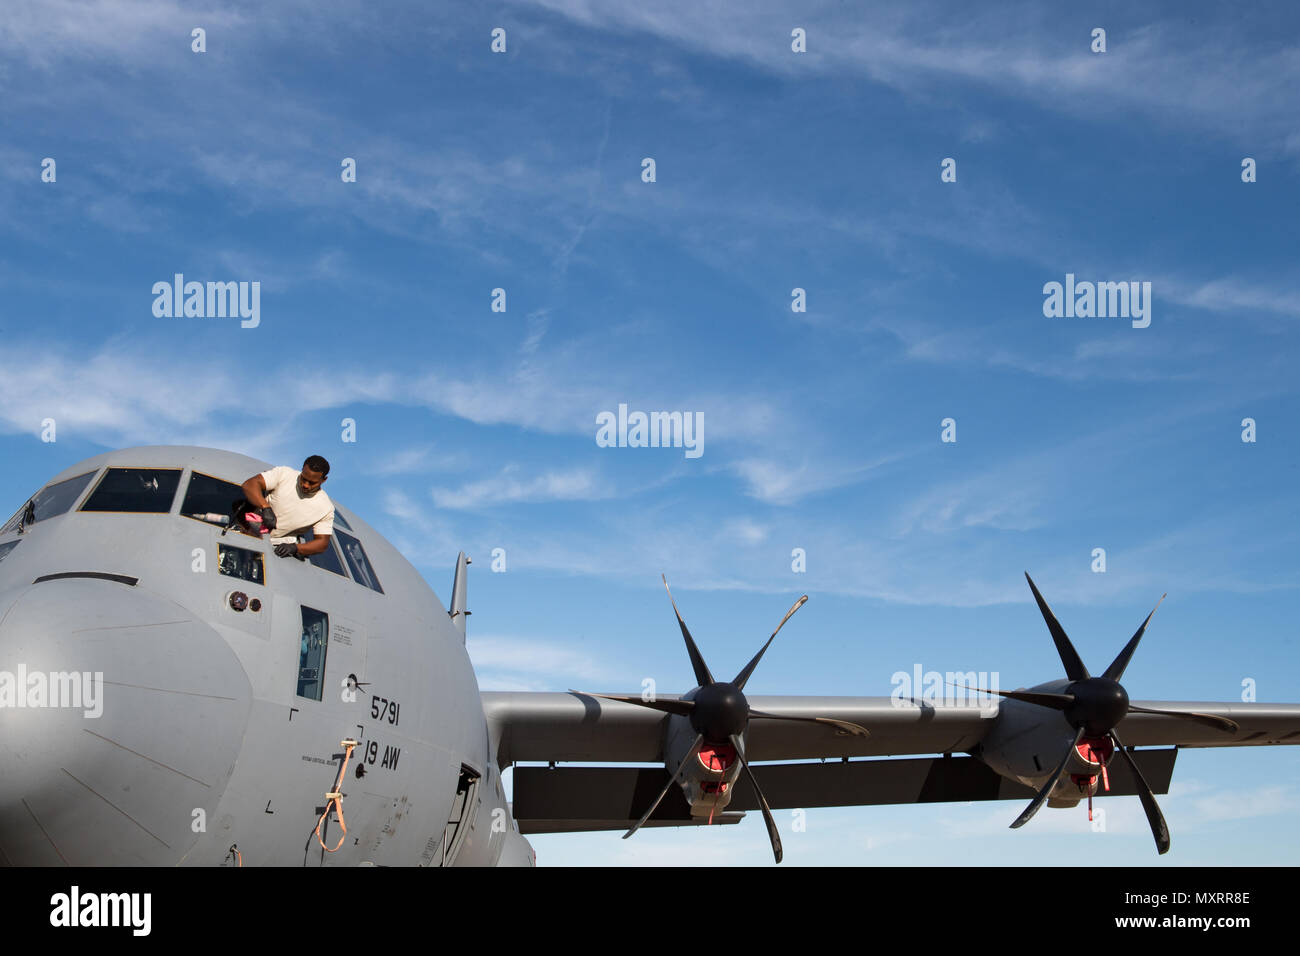 Airman 1st Class Dominick Partlow, a crewchief with the 19th Aircraft Maintenance Squadron at Little Rock Air Force Base in Arkansas, cleans the windows of a C-130J Hercules during a preflight inspection on November 21, 2016. Partlow, a native of Chapel Hill, N.C., is tasked with supporting the largest C-130 fleet in the world. (U.S. Air Force photo by Tech. Sgt. Brandon Shapiro) Stock Photo